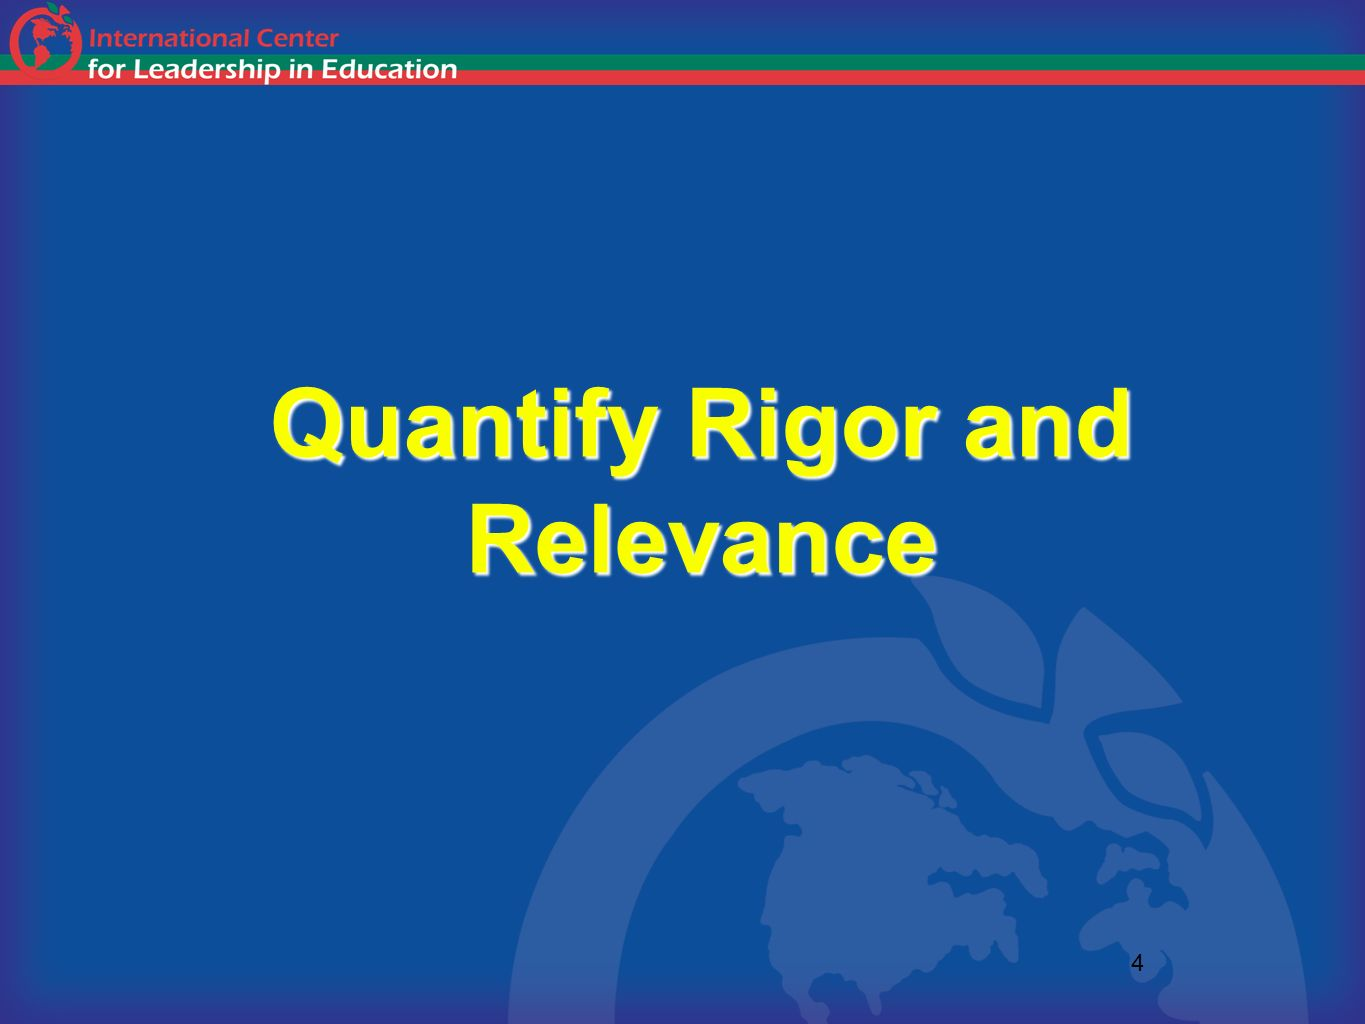 Quantify Rigor and Relevance